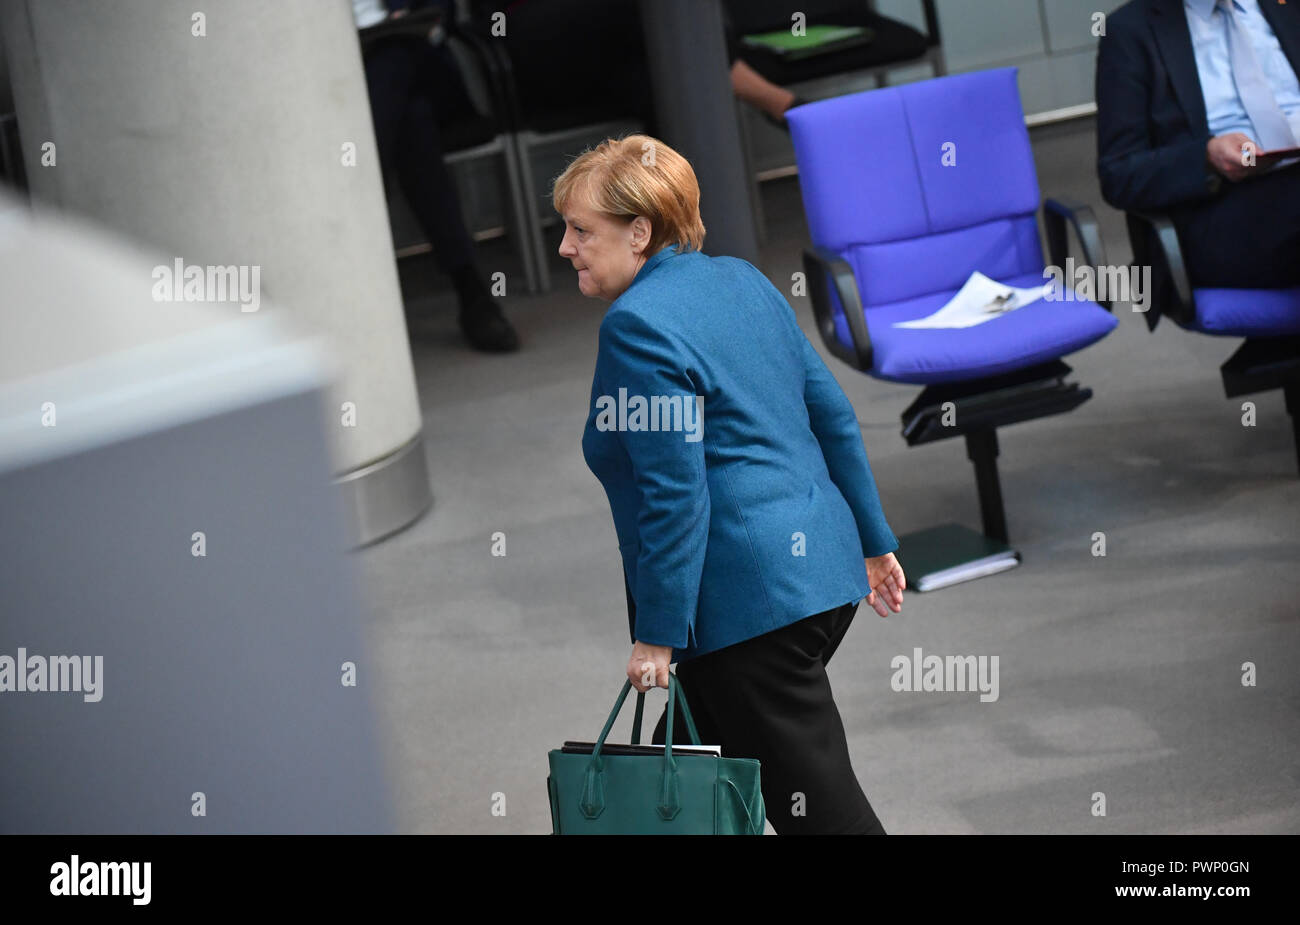 Berlin, Germany. 17th Oct, 2018. Chancellor Angela Merkel (CDU) is leaving the plenary session in the German Bundestag after her government declaration on the EU summit in Brussels. The 57th session of the 19th legislature will focus on European policy. Photo: Bernd Von Jutrczenka/dpa Credit: dpa picture alliance/Alamy Live News - Stock Image